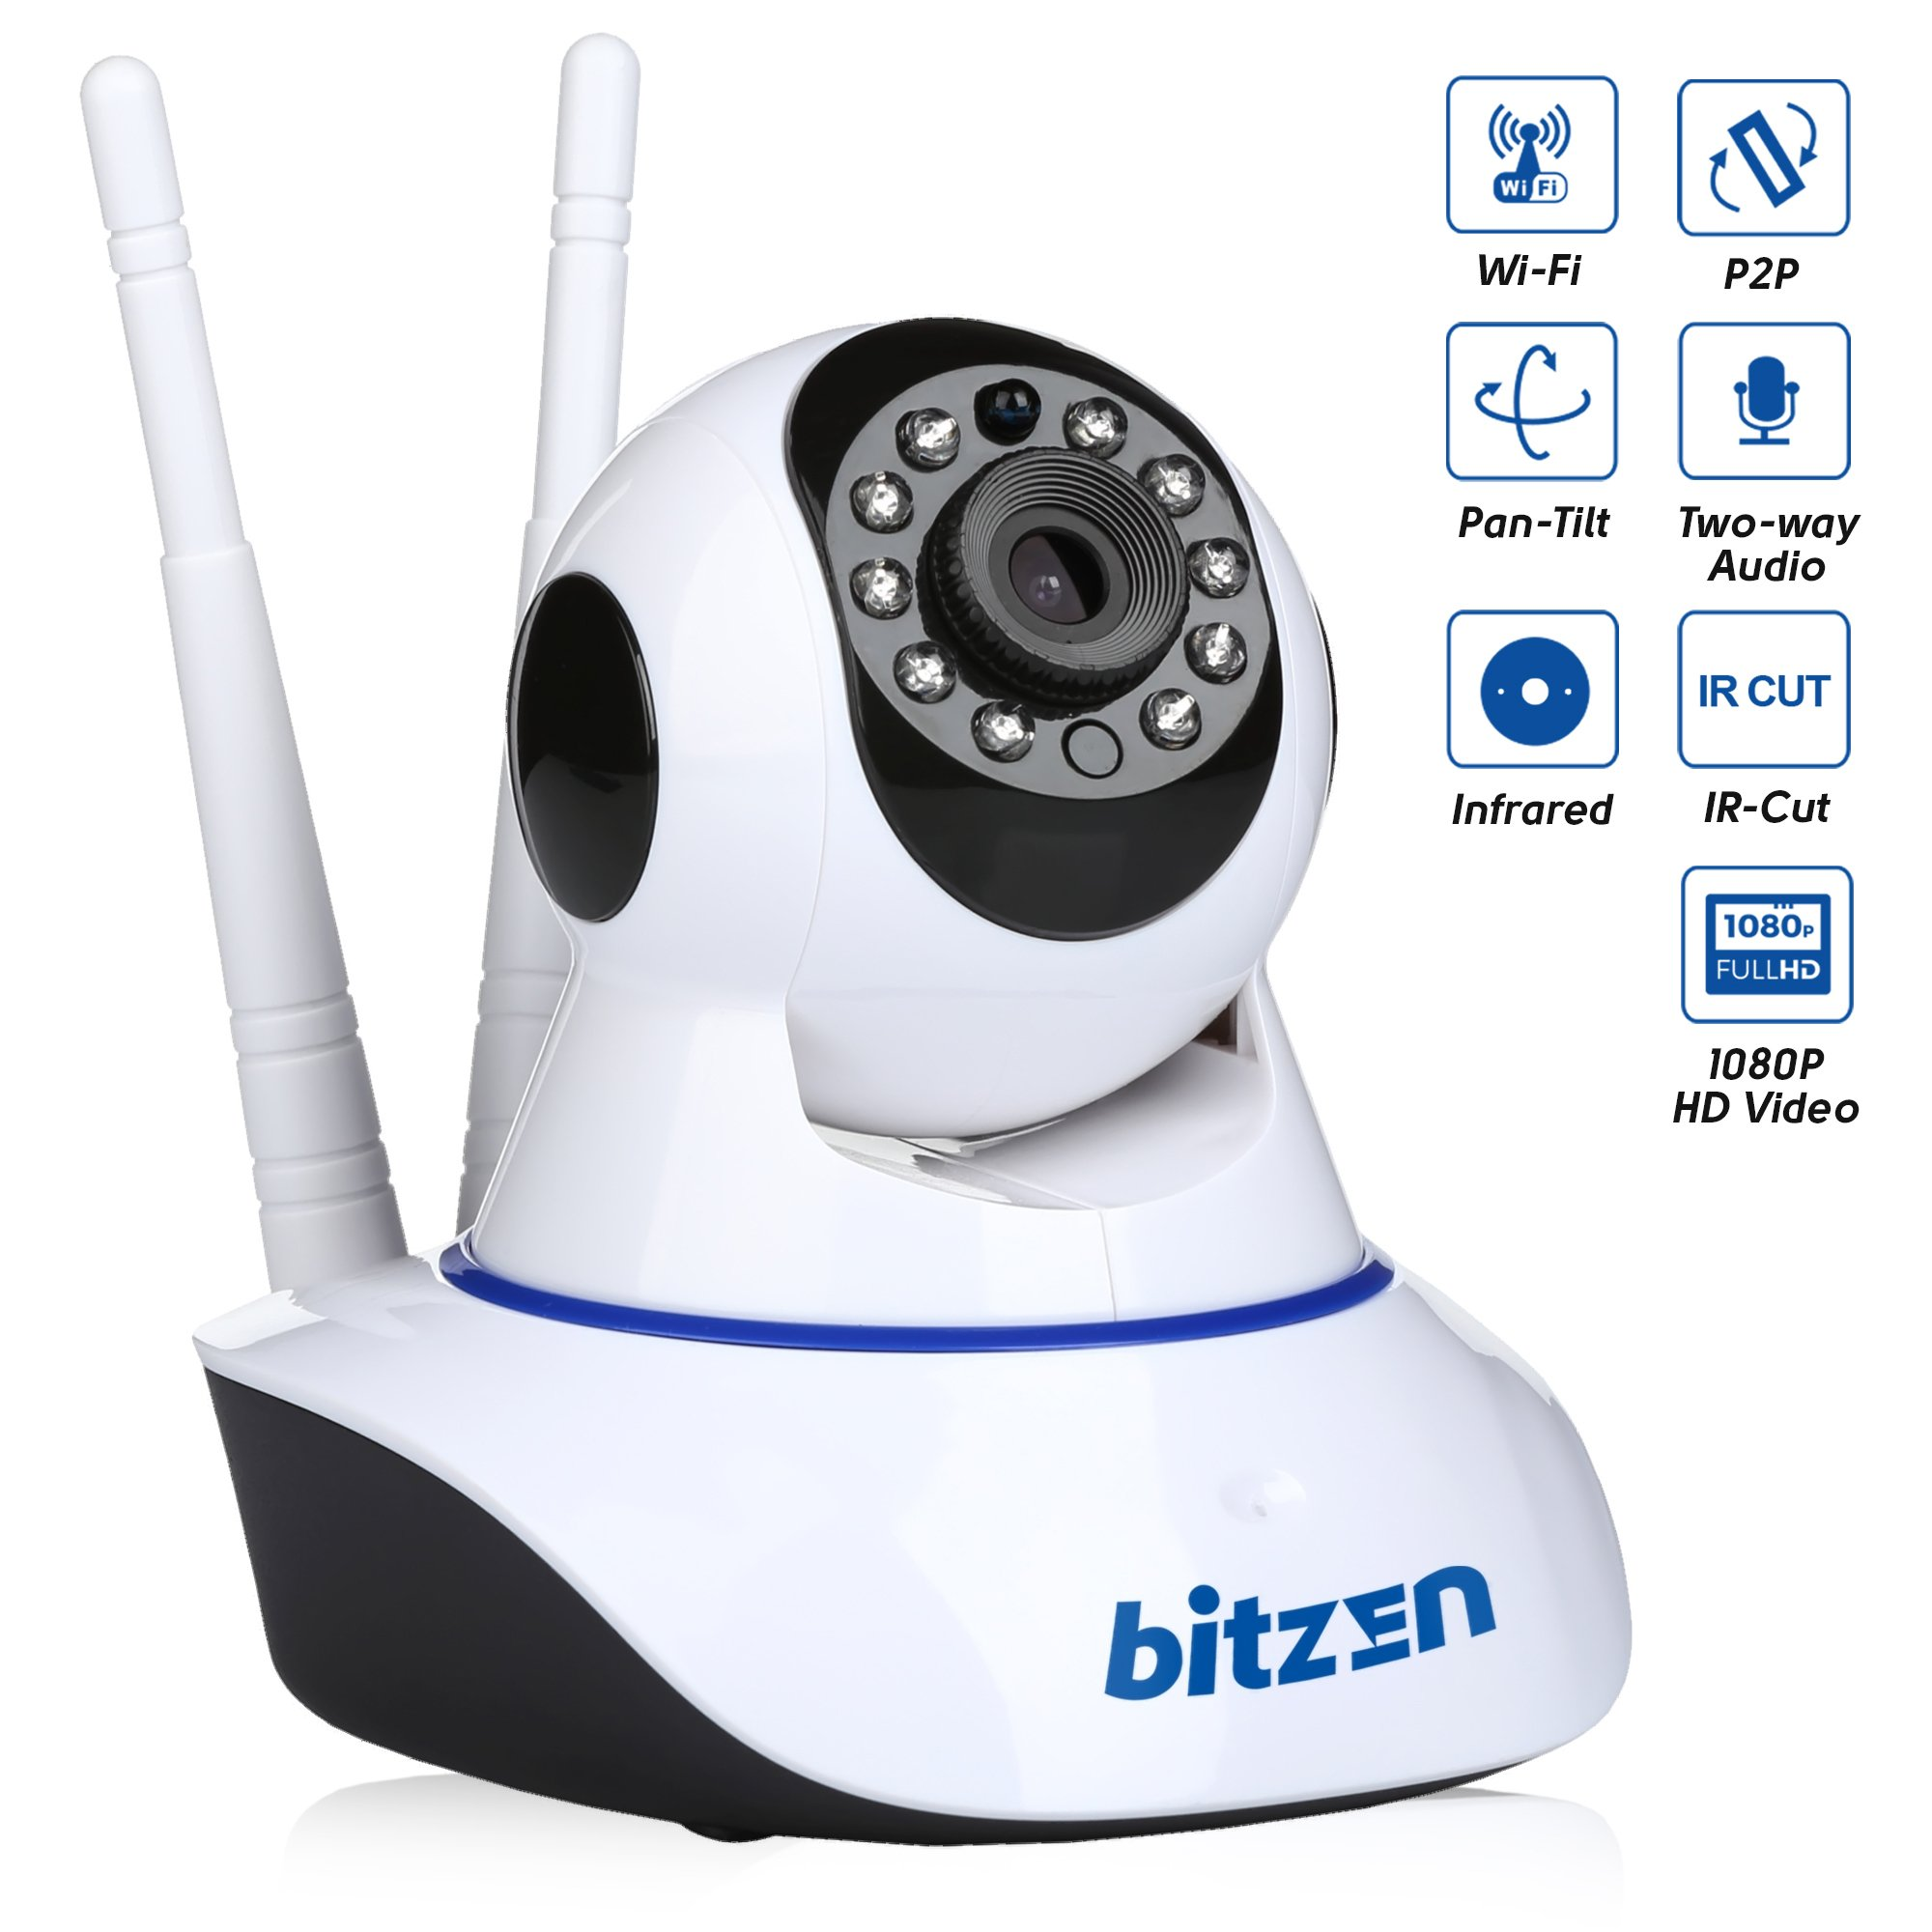 Bitzen IP Wireless Home Security Camera WiFi - Mountable Full Color Motion Detection 1080p Full HD Indoor Dome Surveillance Camera - Night Vision Two Way Audio Video Baby Monitor System